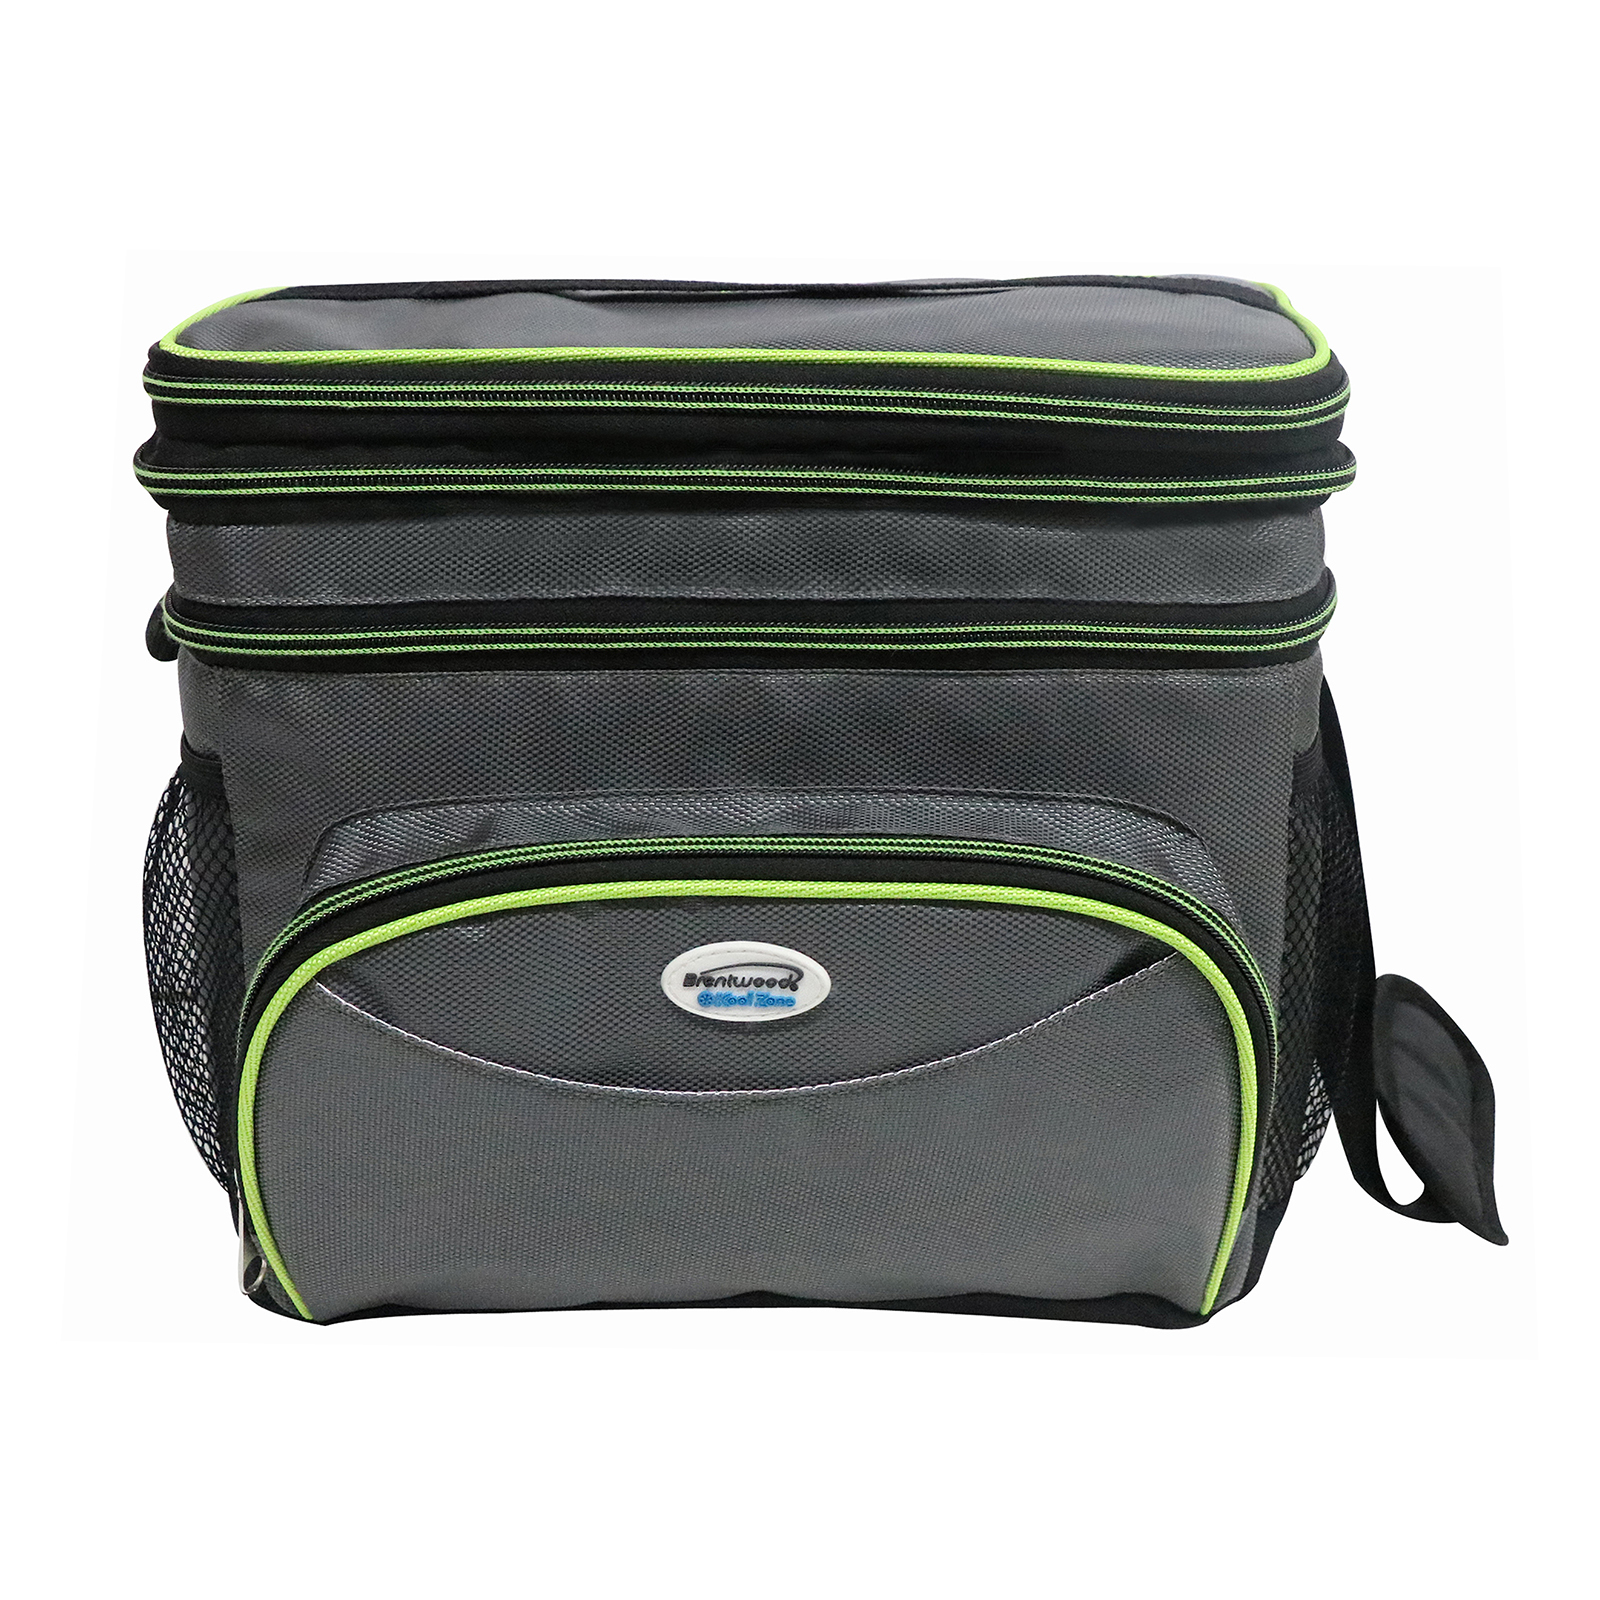 Brentwood Cooler Bag 6 Can w/ Hard Plastic Ice Bucket-GREEN